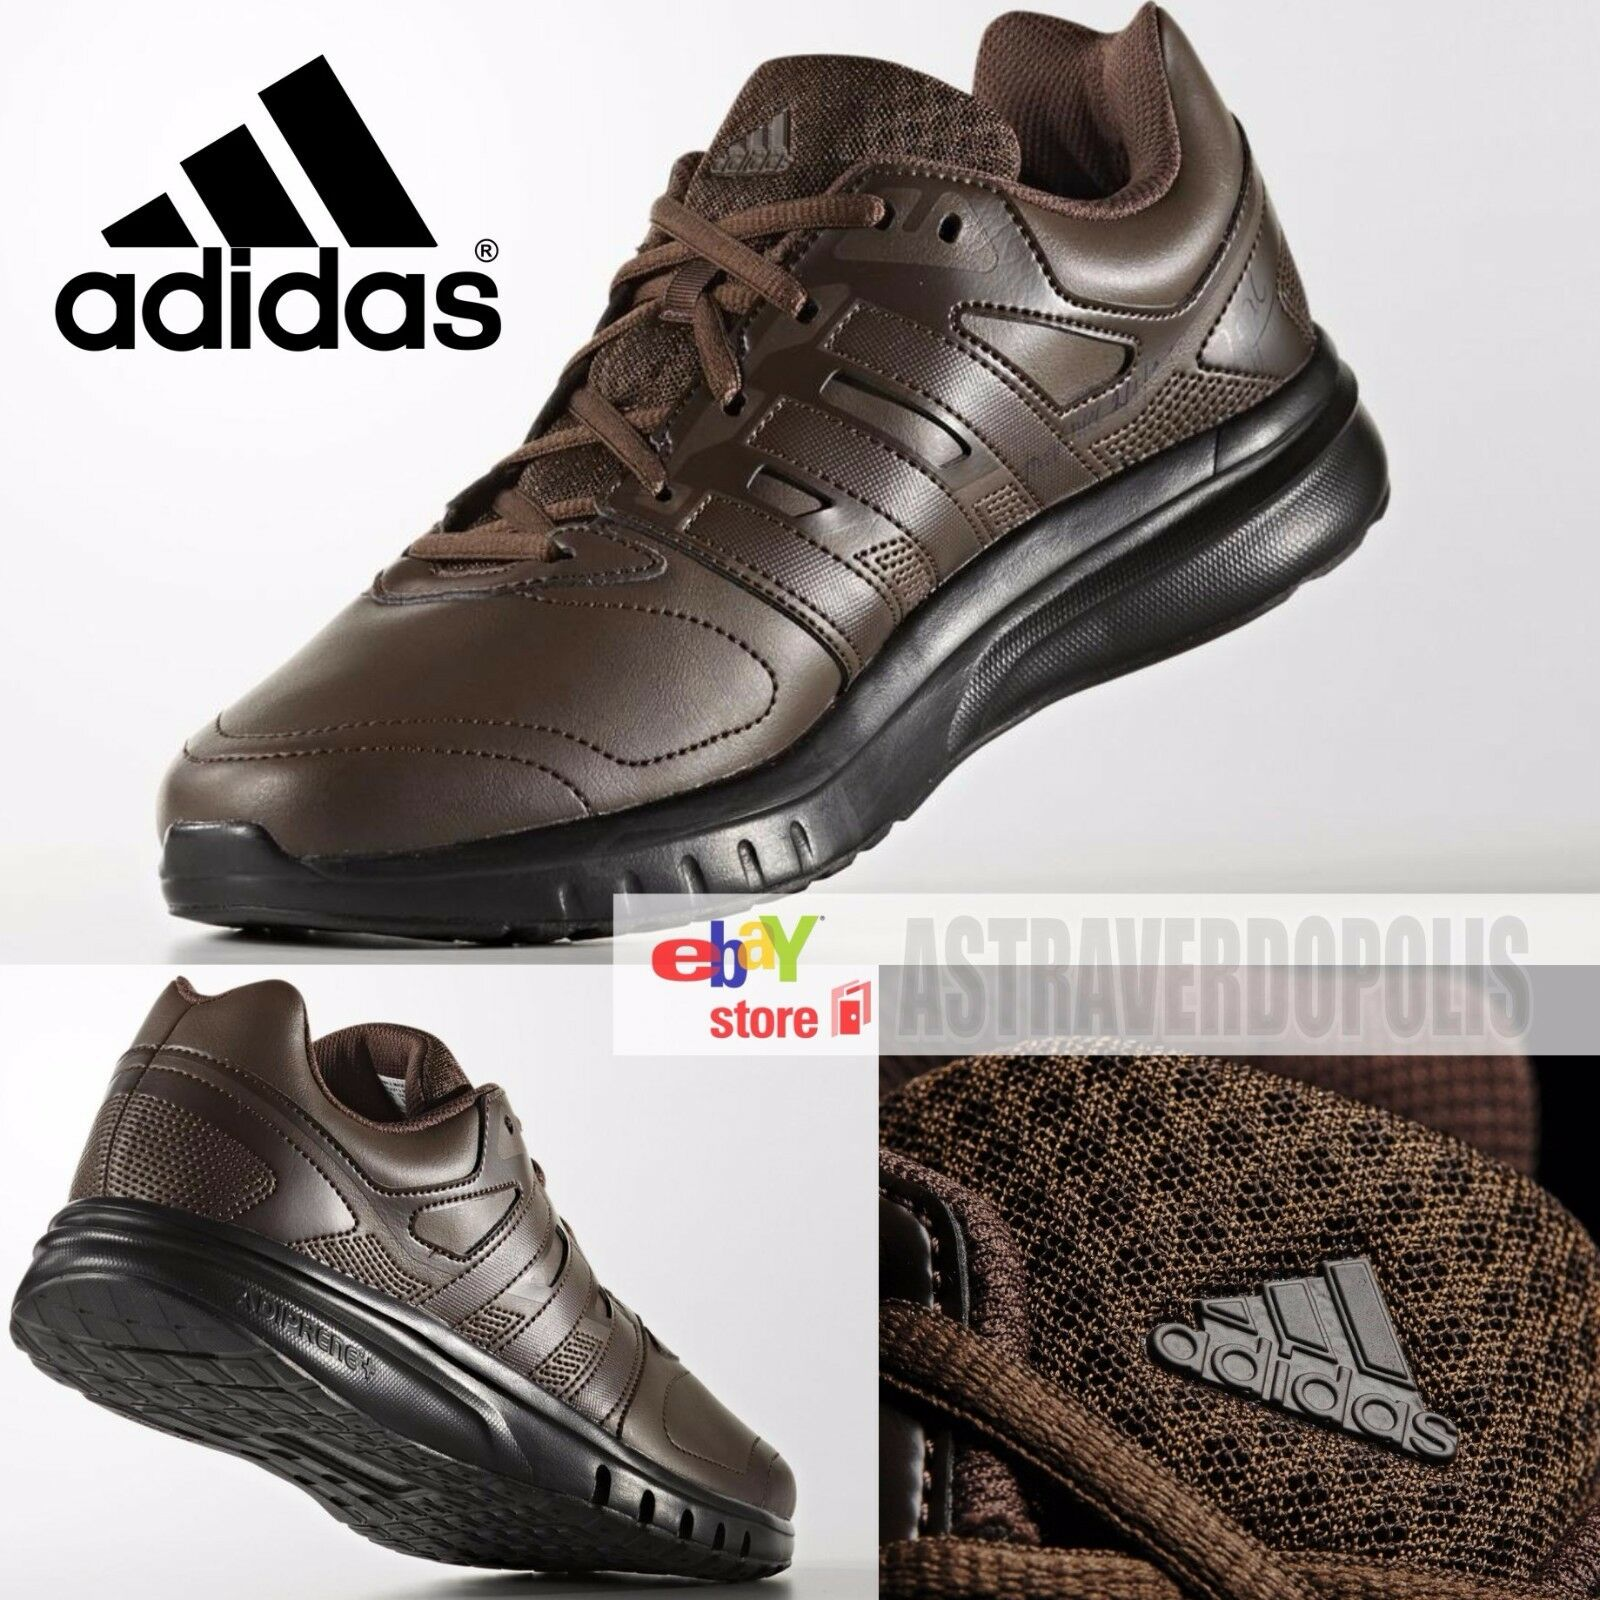 ADIDAS MENS SHOES BROWN GALAXY SPORT SUPERCLOUD HAMBURG BERN US 8 AQ2895